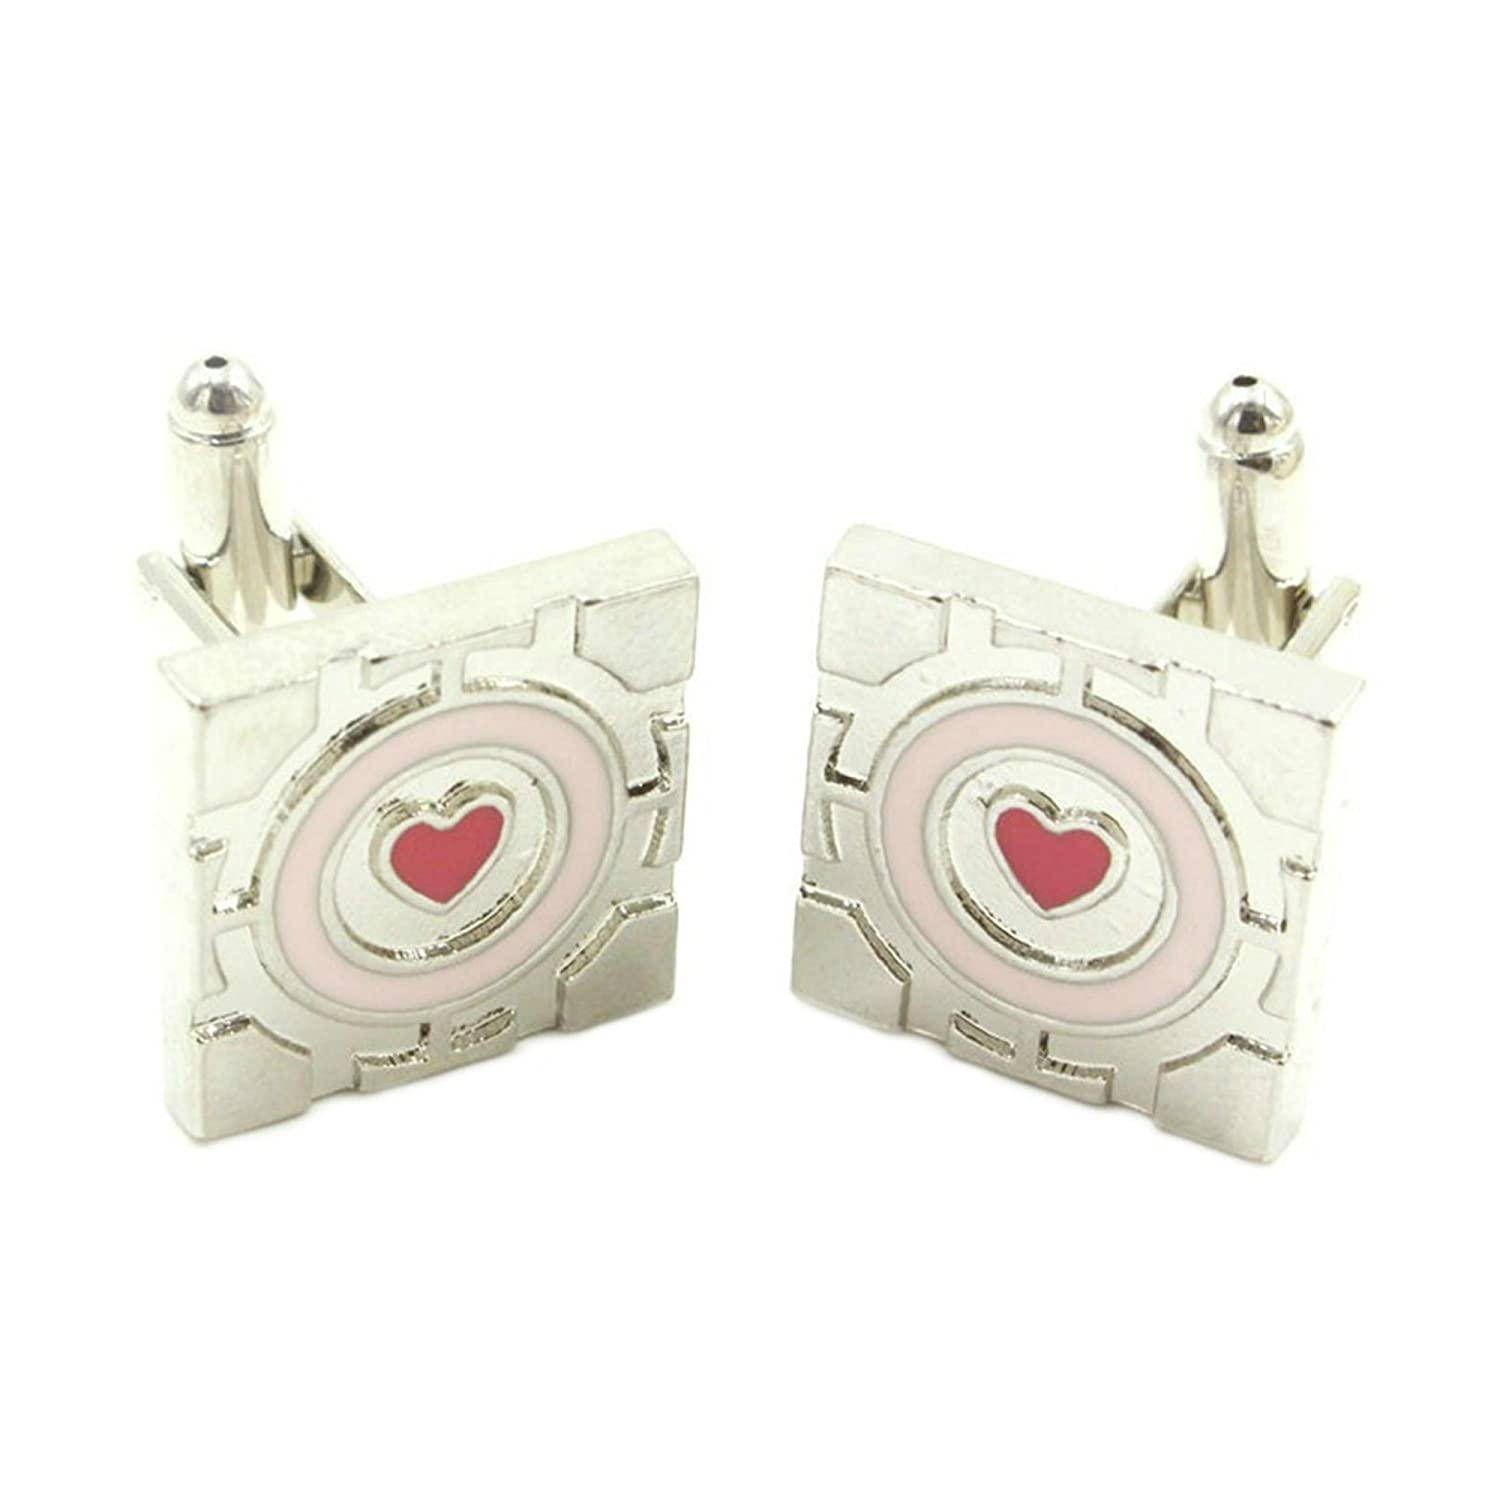 Outlander Gear Video Game Portal Companion Cube Superhero 2018 Games Theme Logos Groom Groomsmen Mens Boys Cufflinks